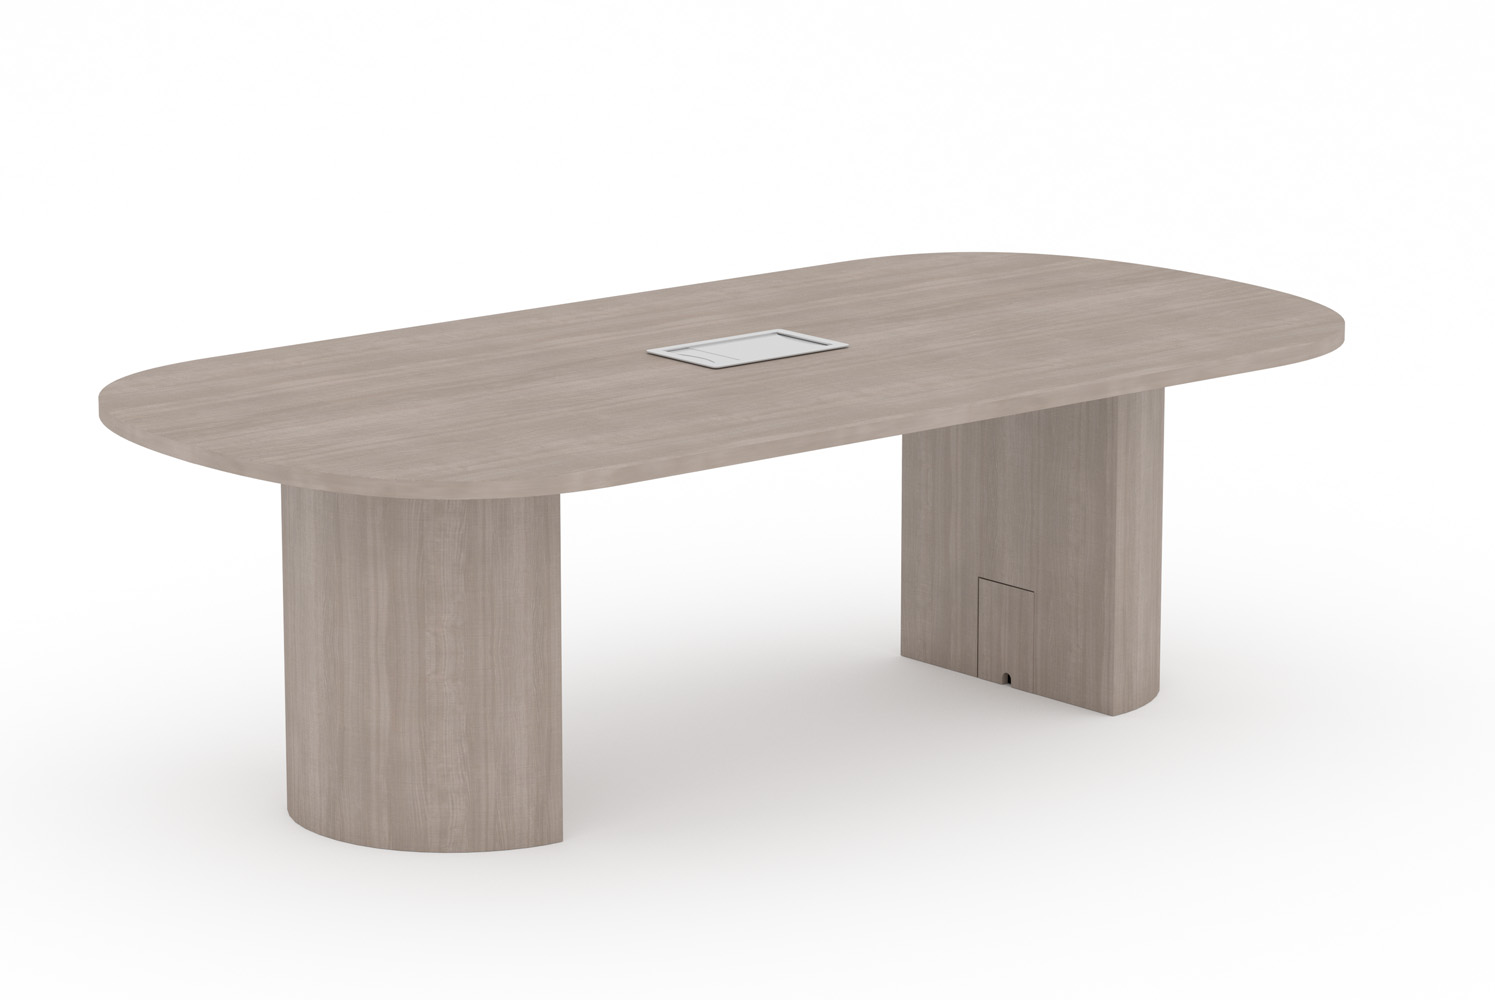 Wondrous Erg International Beta Gmtry Best Dining Table And Chair Ideas Images Gmtryco